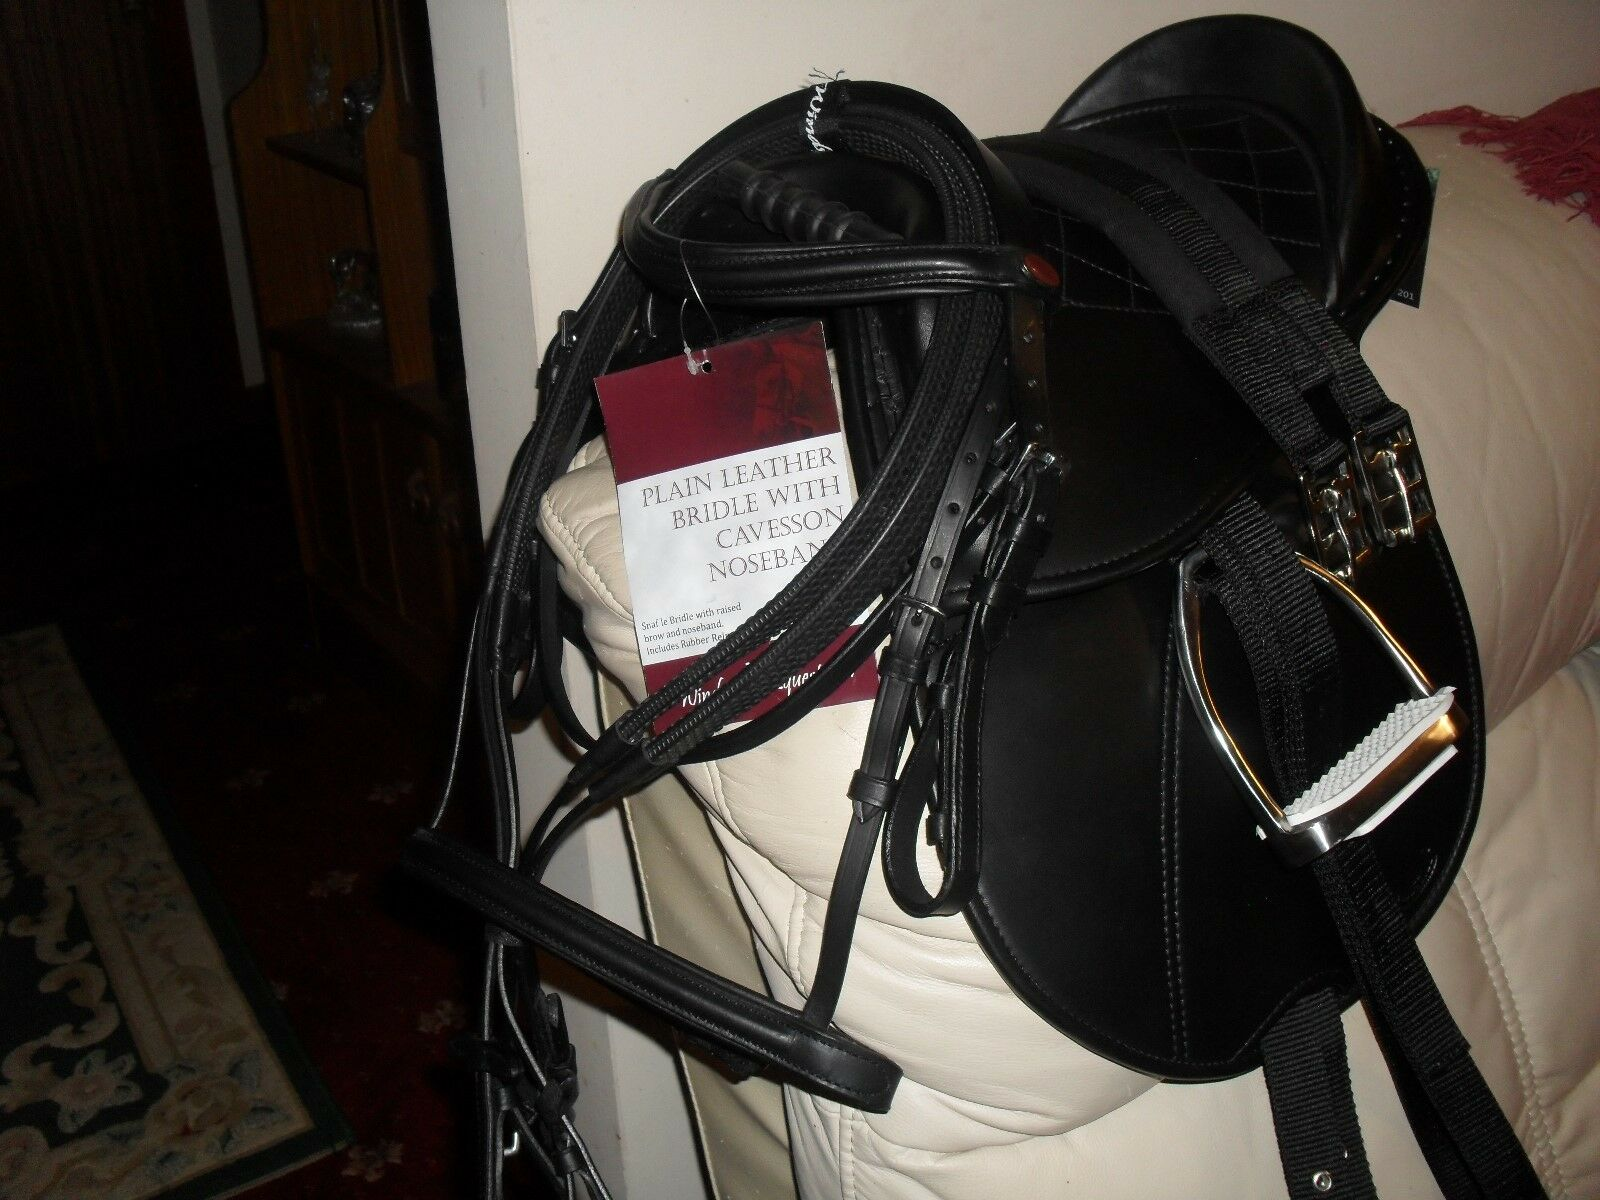 New Rhinegold  Cub Saddle Set,Bridle, Irons,Leathers,Girth, PRICE REDUCED TO SELL  the best selection of